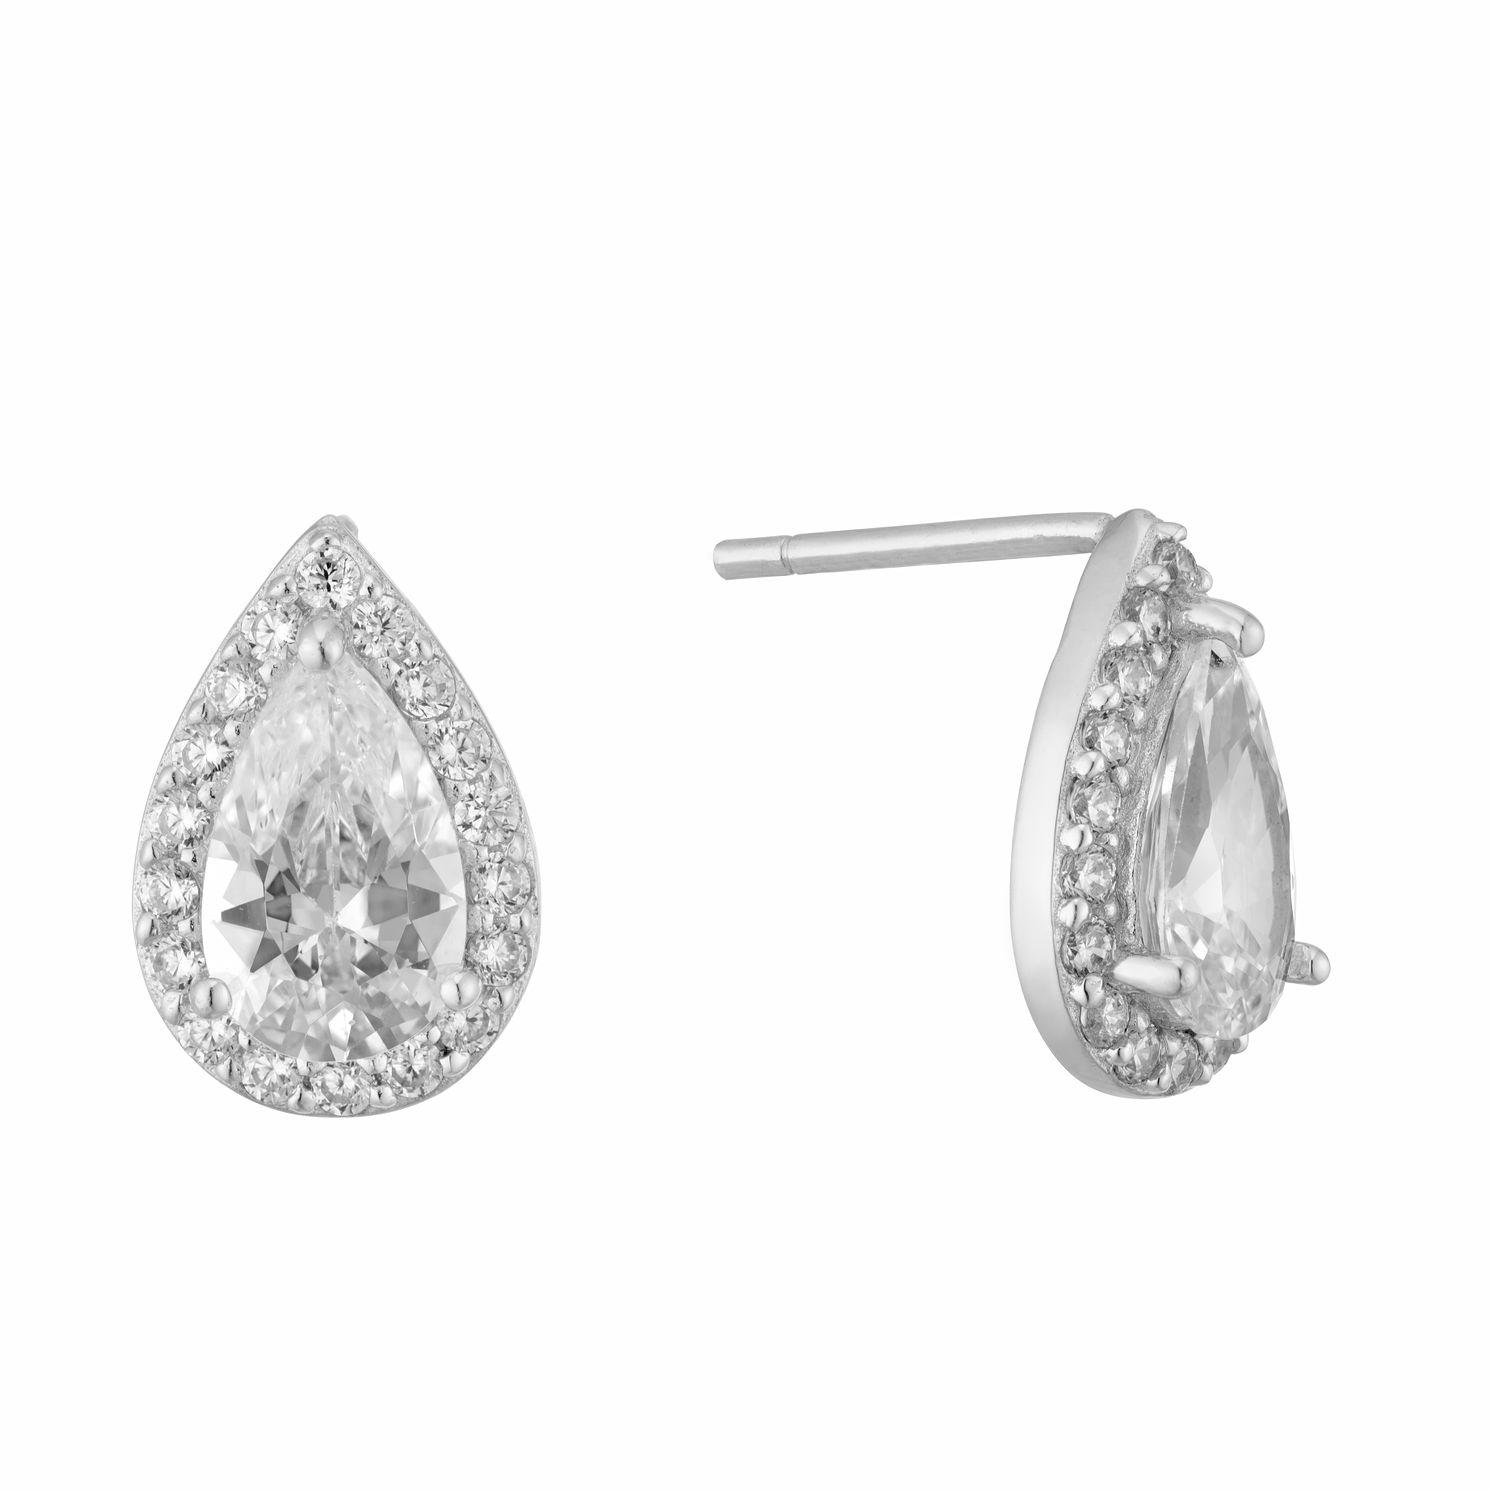 Silver & Cubic Zirconia Pearl Halo Stud Earrings - Product number 9773339